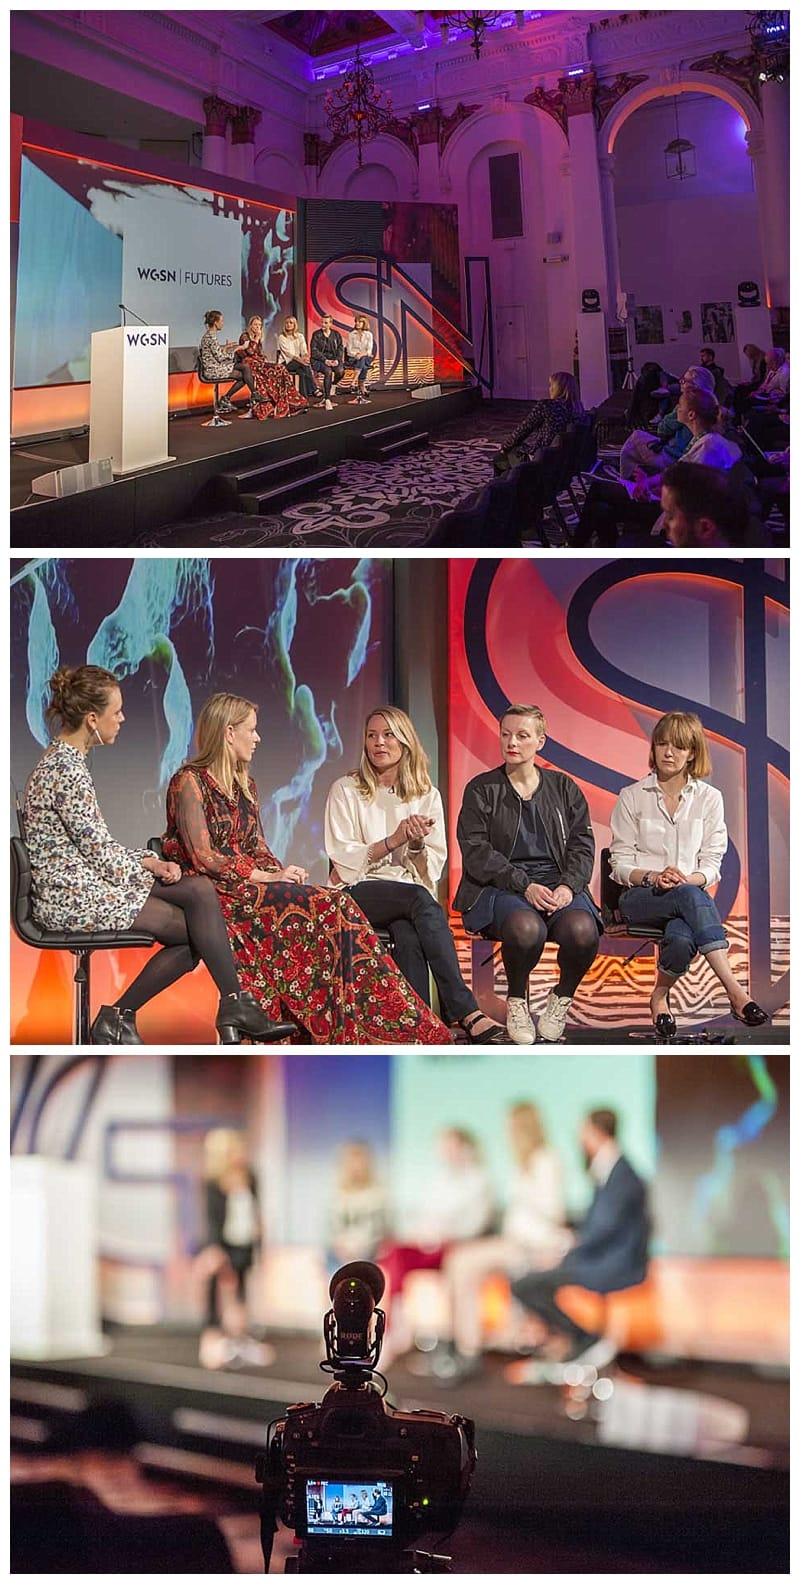 wgsn-conference-benjamin-wetherall-photography-0004